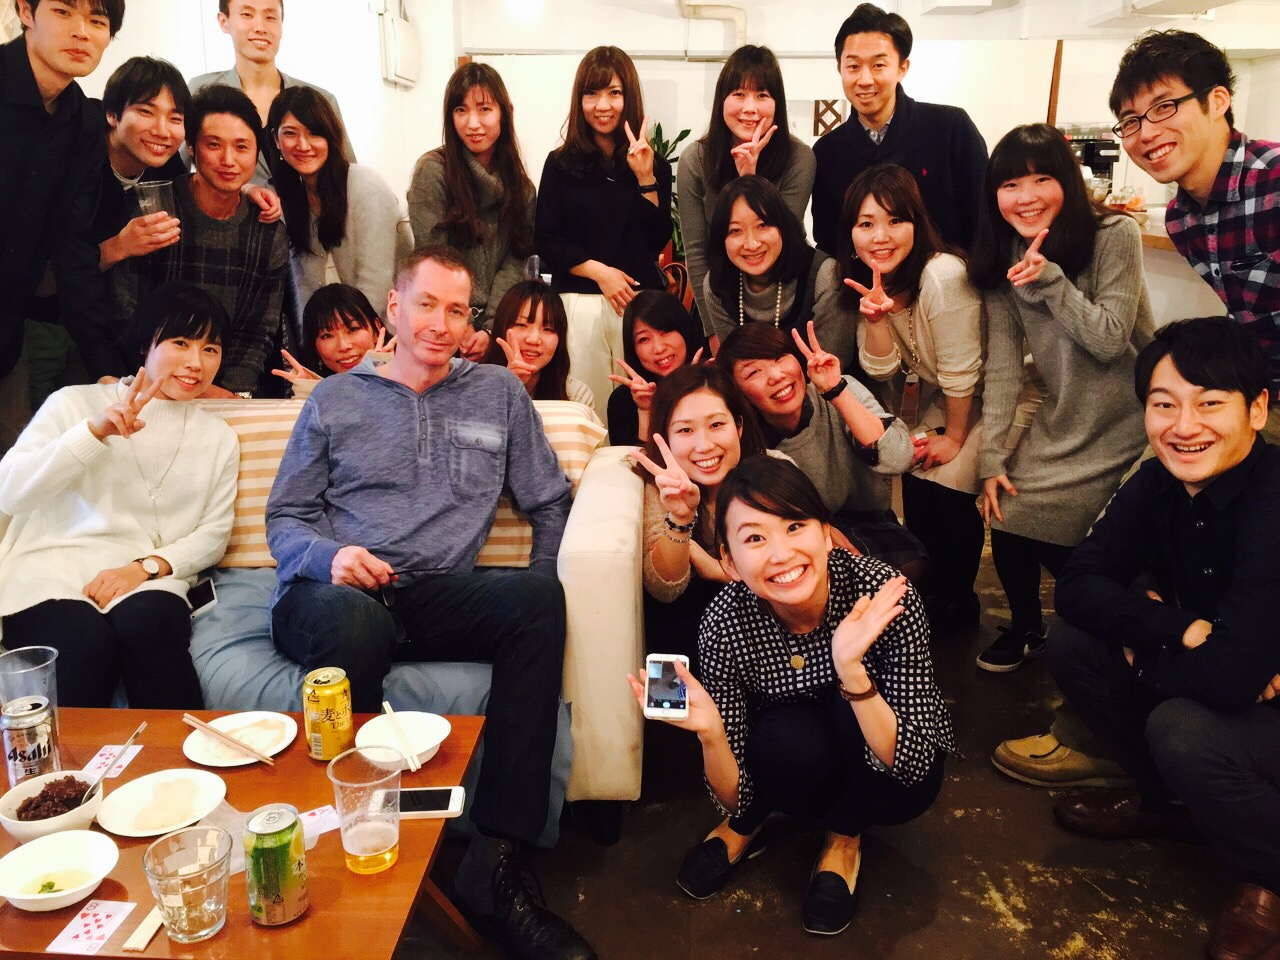 New Year Party 2016はpictionaryとごちそうと楽しい仲間で、一気に英語モード!